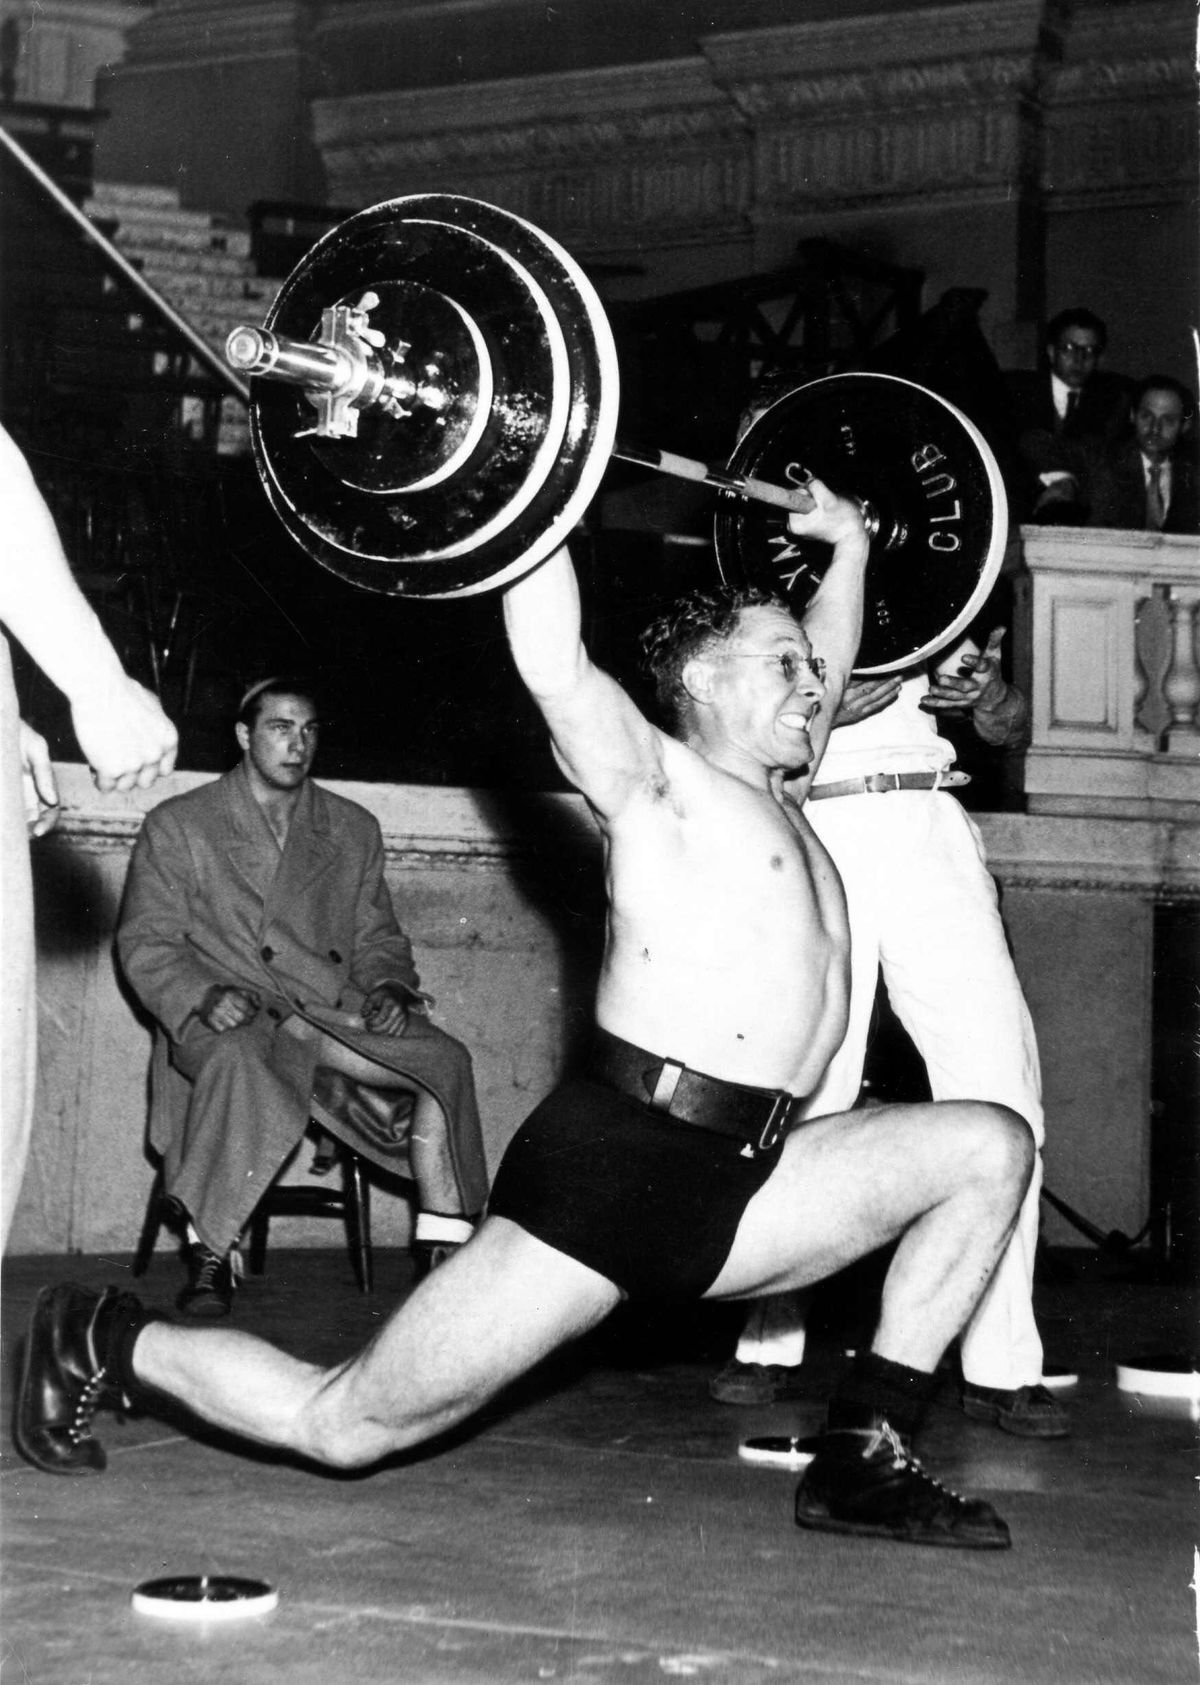 Weightlifter Chas Jnr. doing The Snatch.